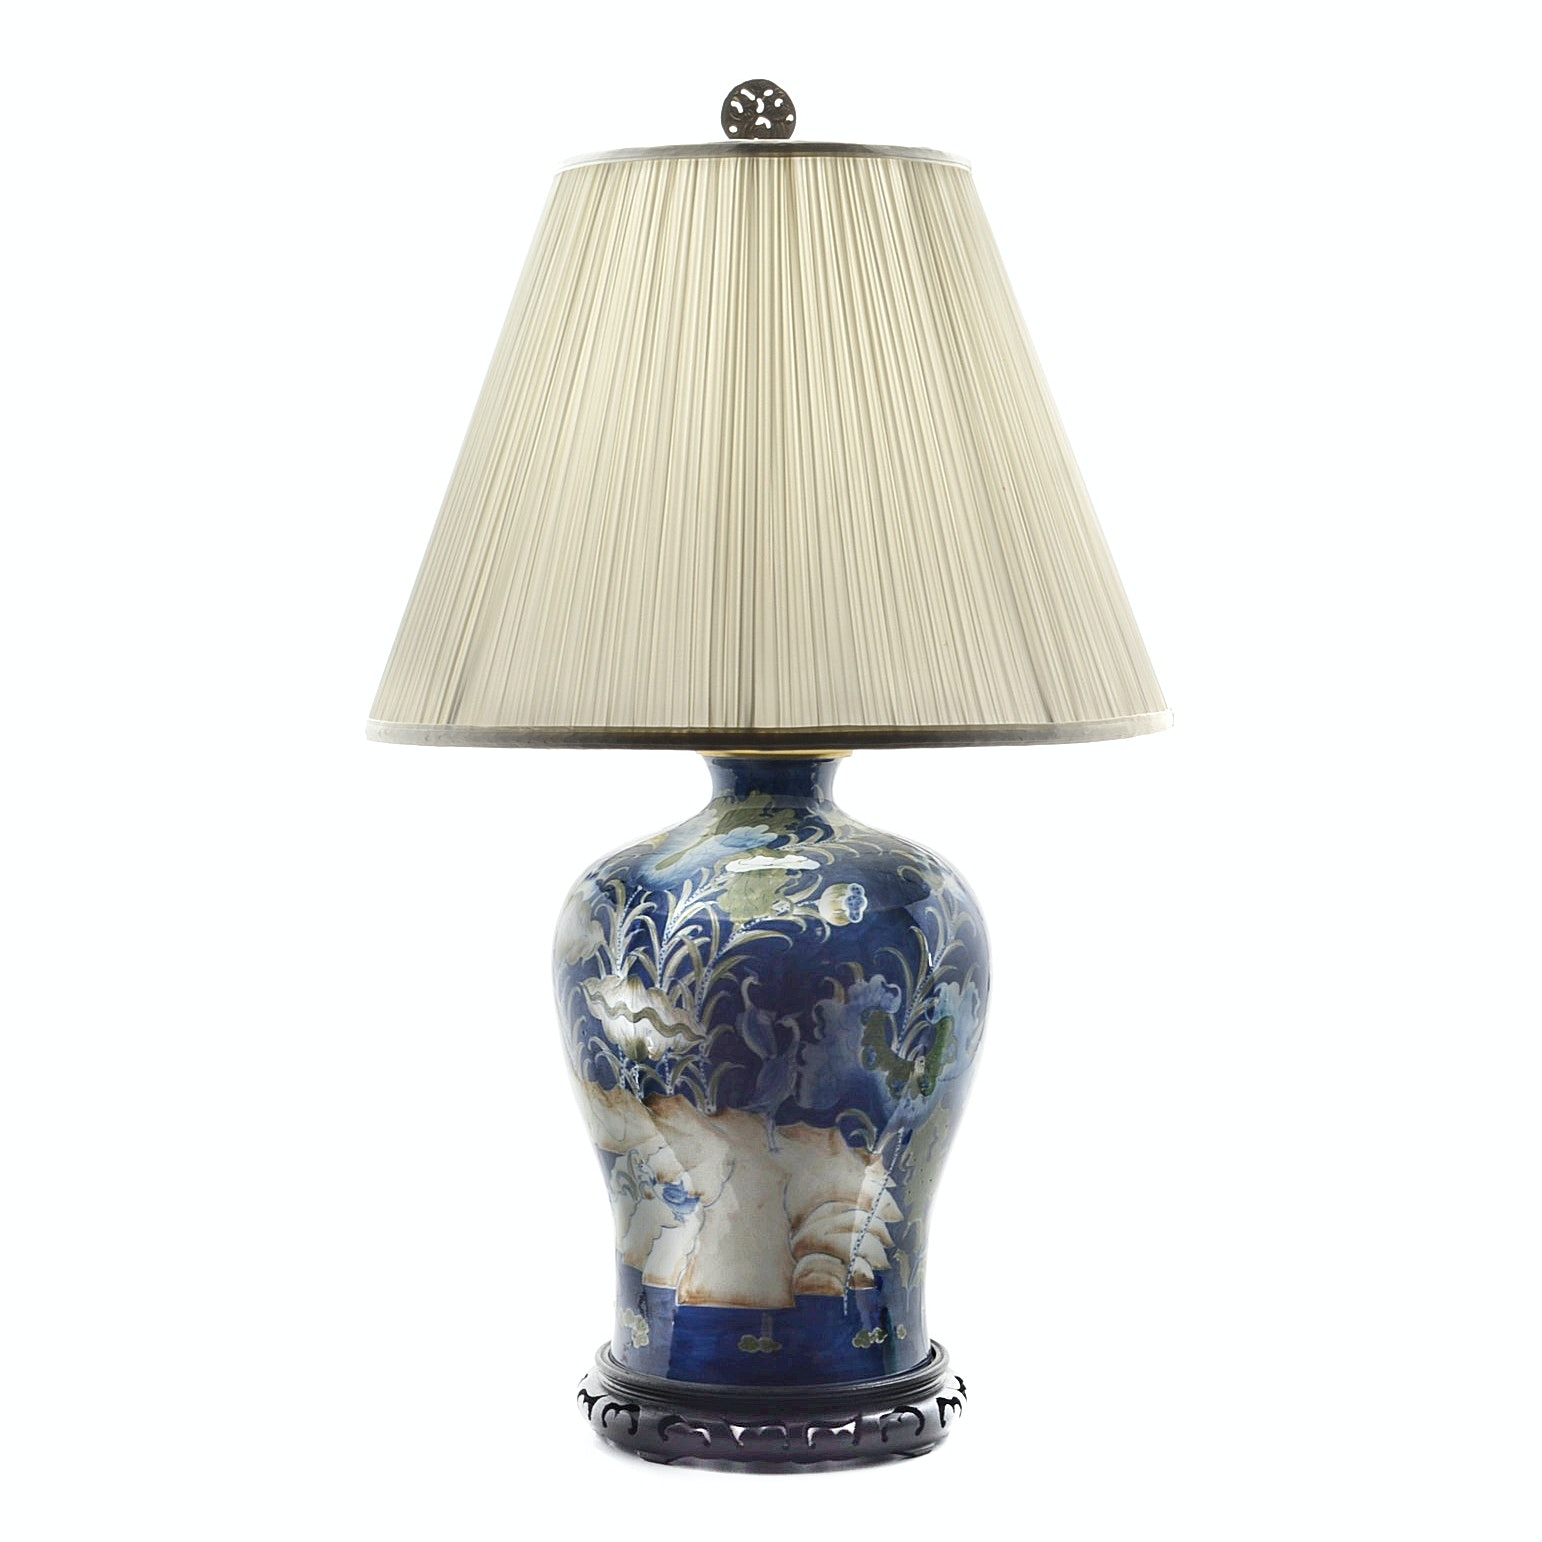 Hand Painted Porcelain Asian Style Vase Lamp